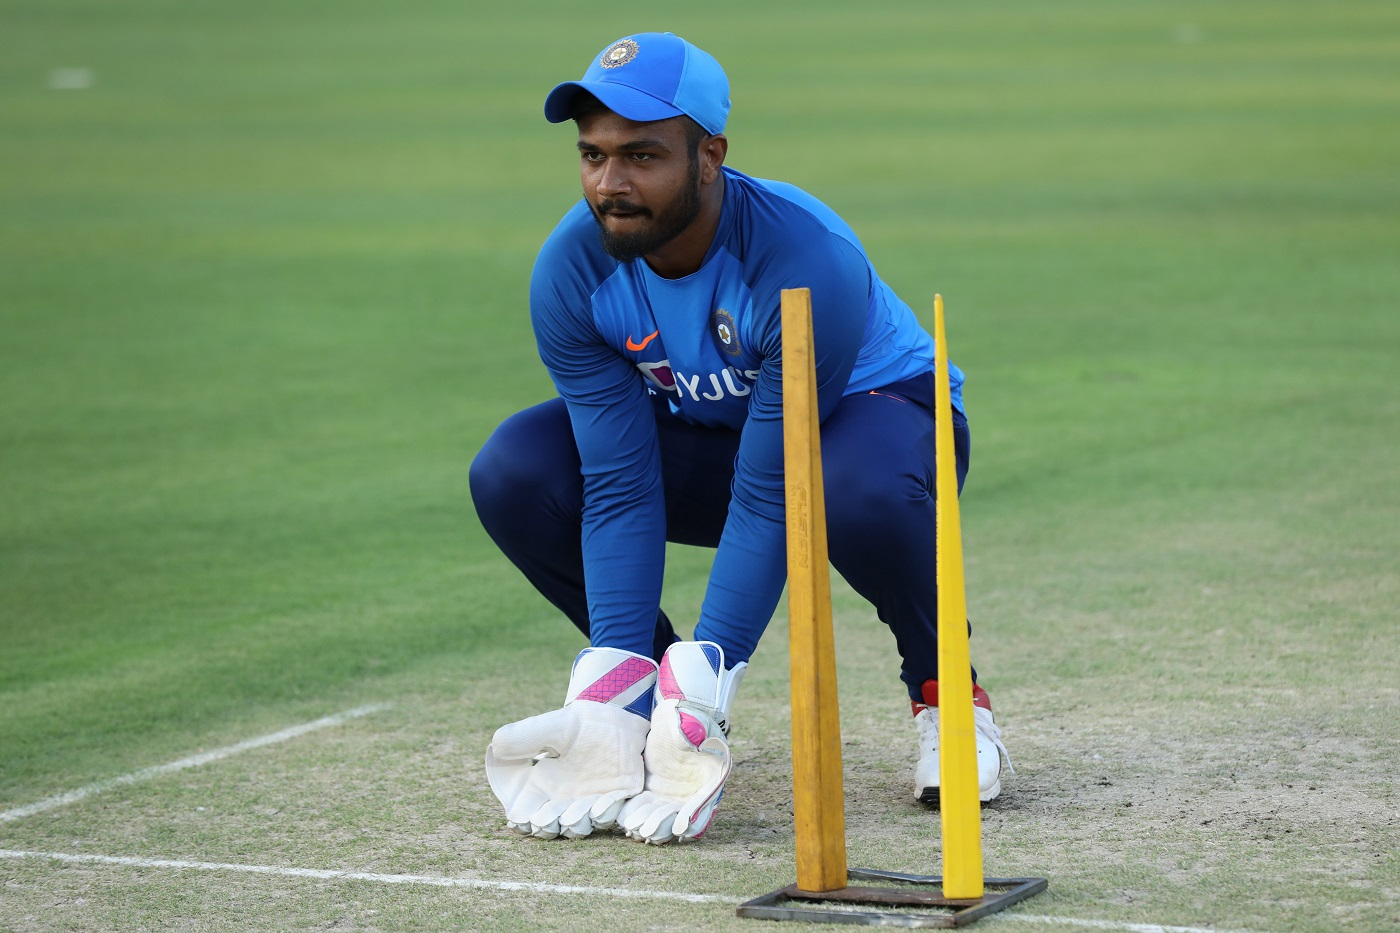 Rohit Sharma Replacement